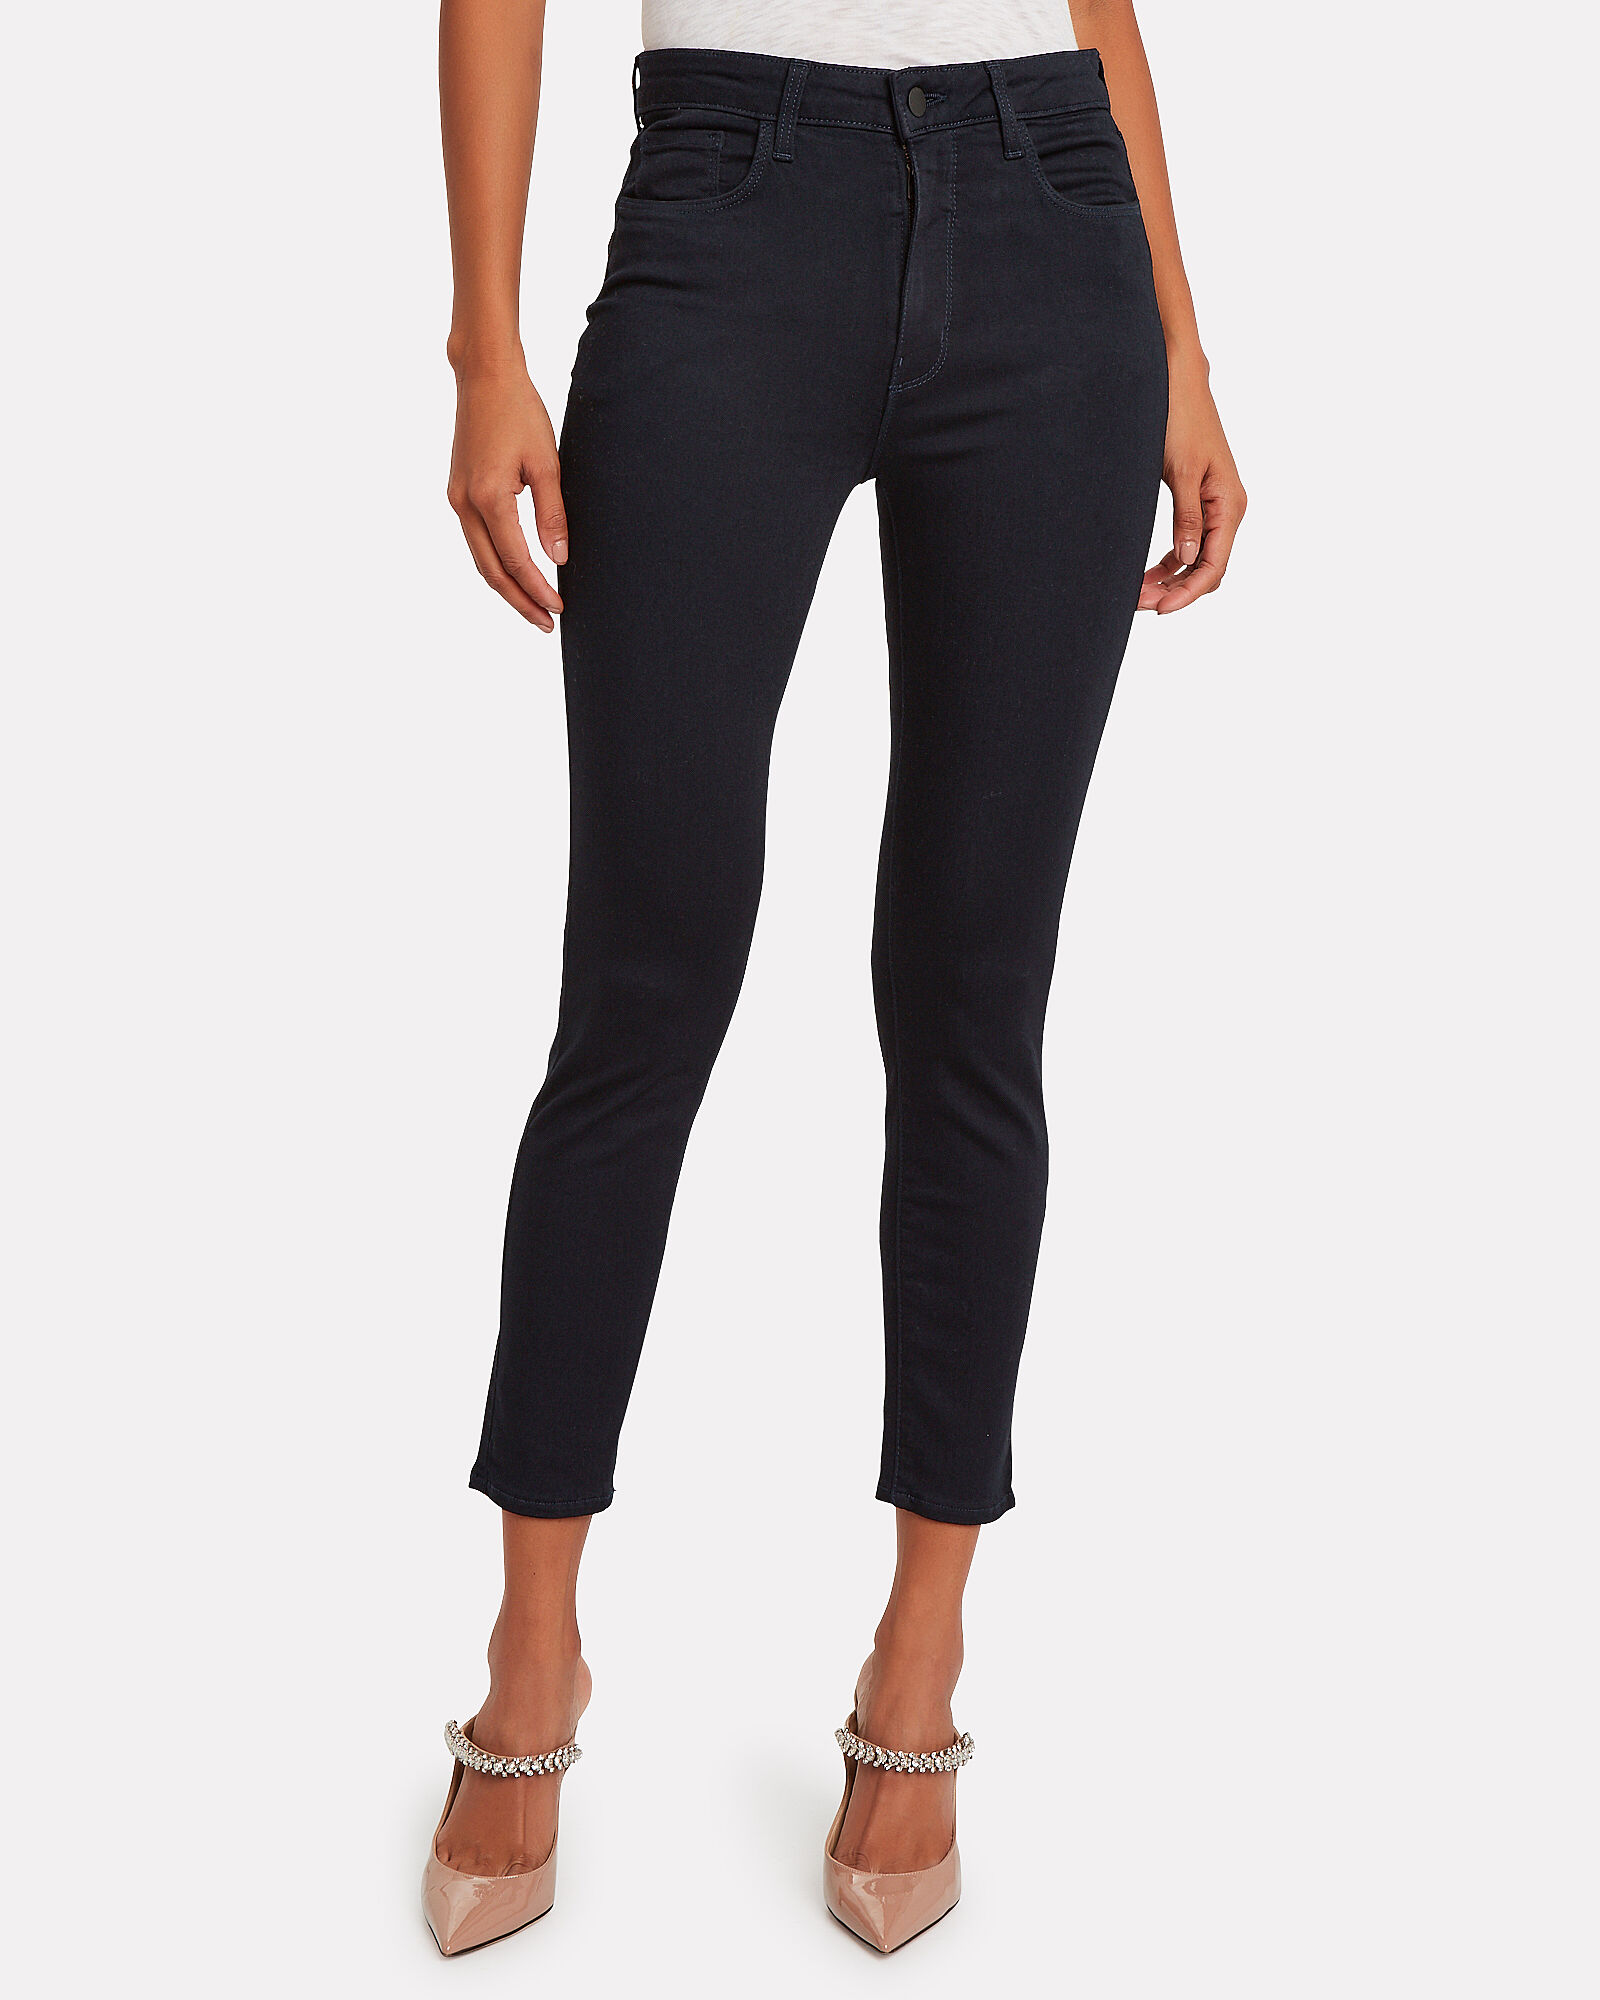 Margot High-Rise Skinny Jeans, DARK INDIGO DENIM, hi-res